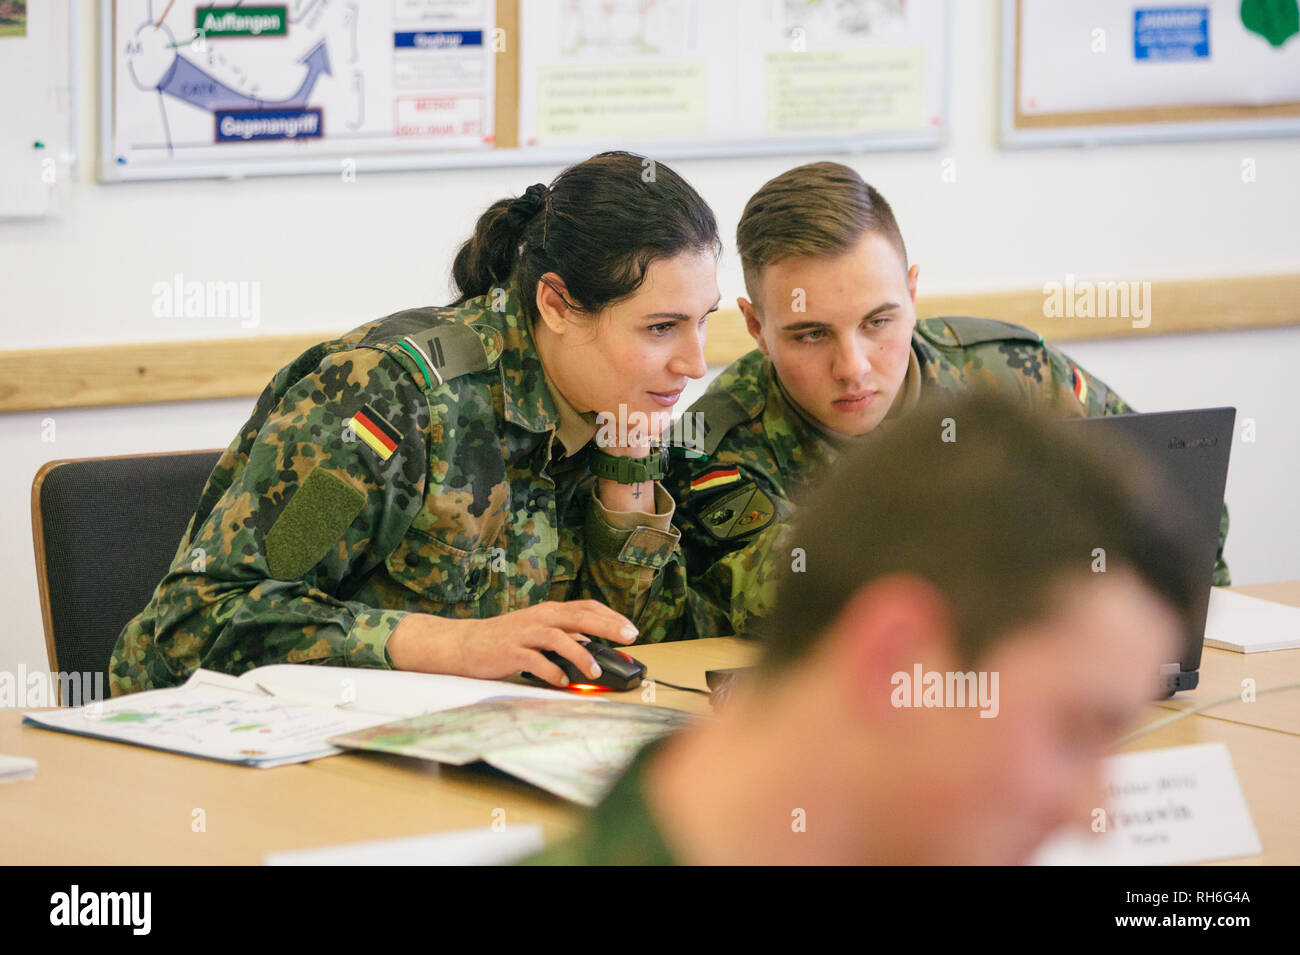 01 February 2019, Saxony, Dresden: During a visit of the Federal Minister for Defence, officer's pupils sit in the classroom of the army's officer's school. Photo: Oliver Killig/dpa-Zentralbild/dpa - Stock Image